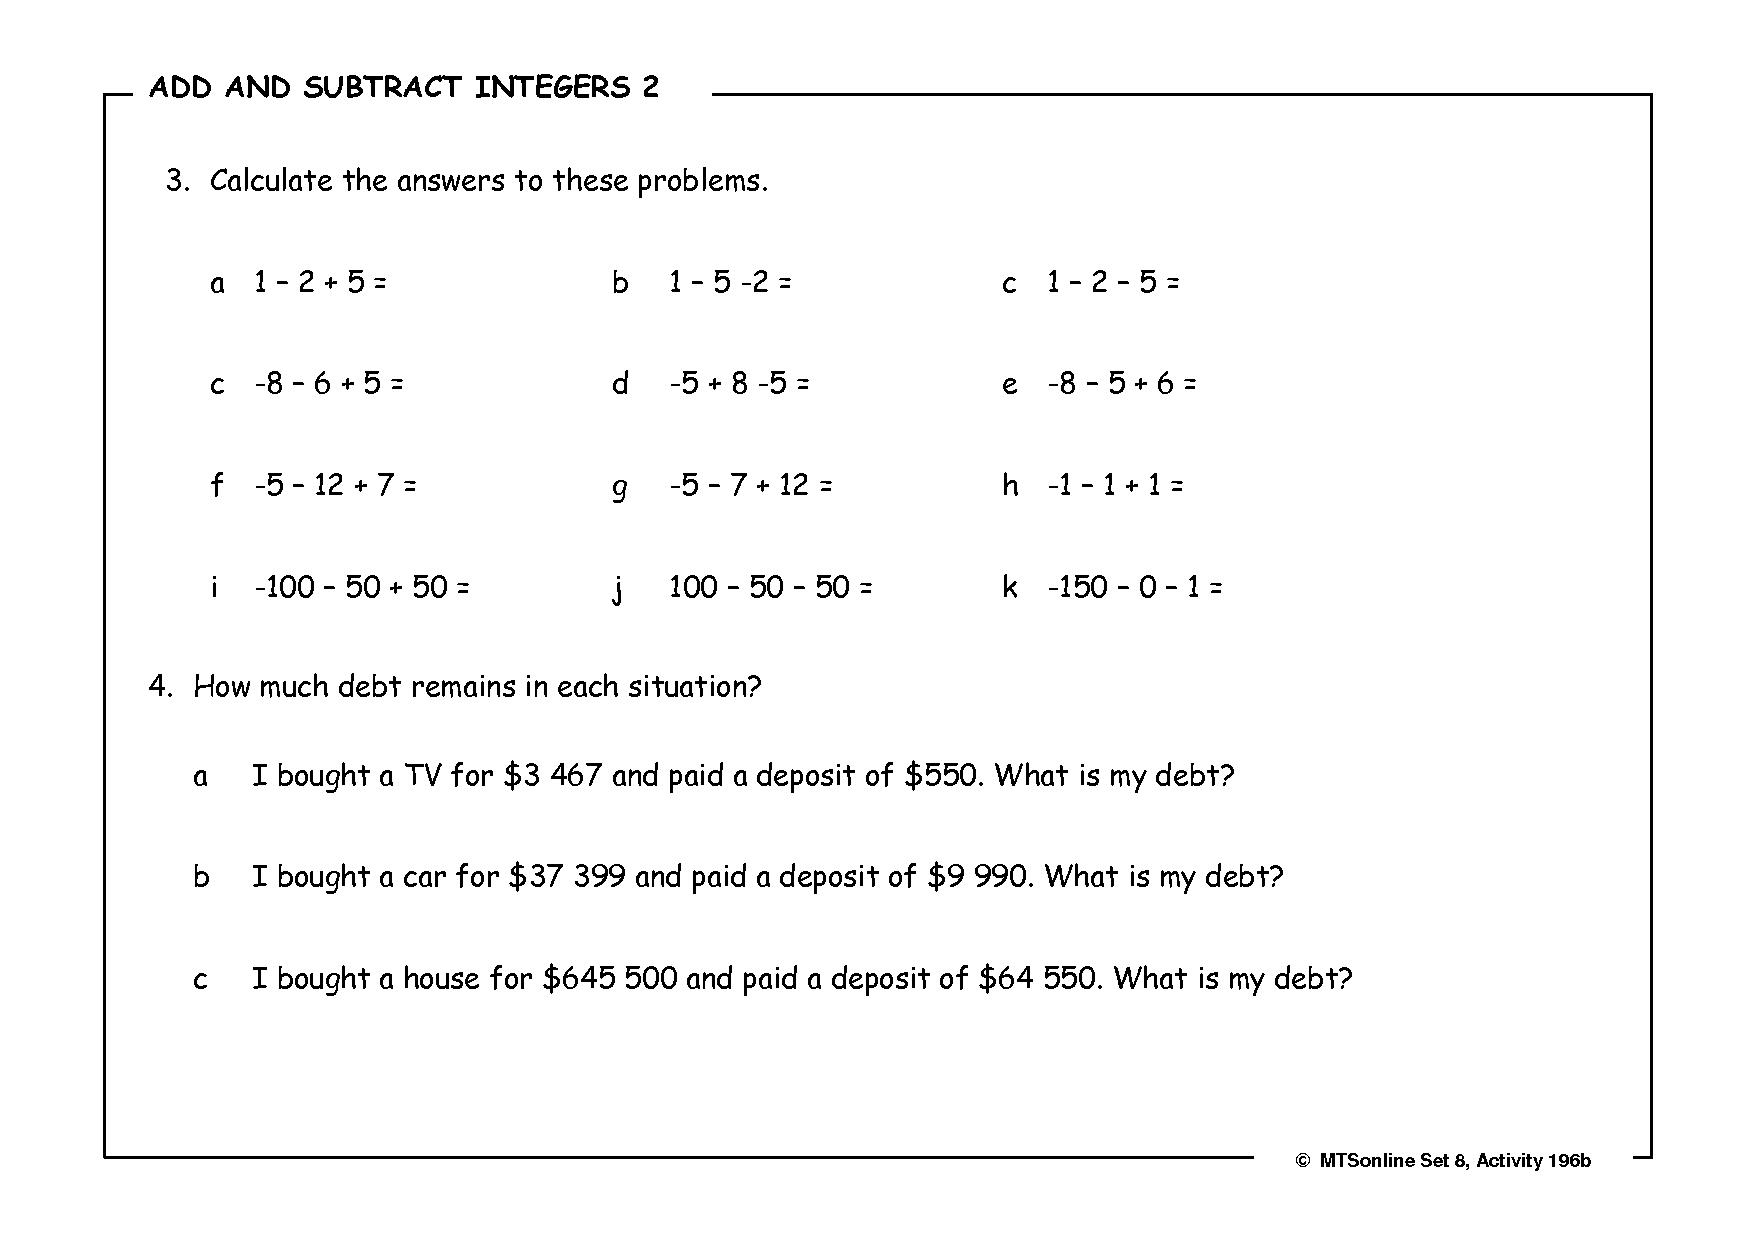 196badd_and_subtract_integers_20002